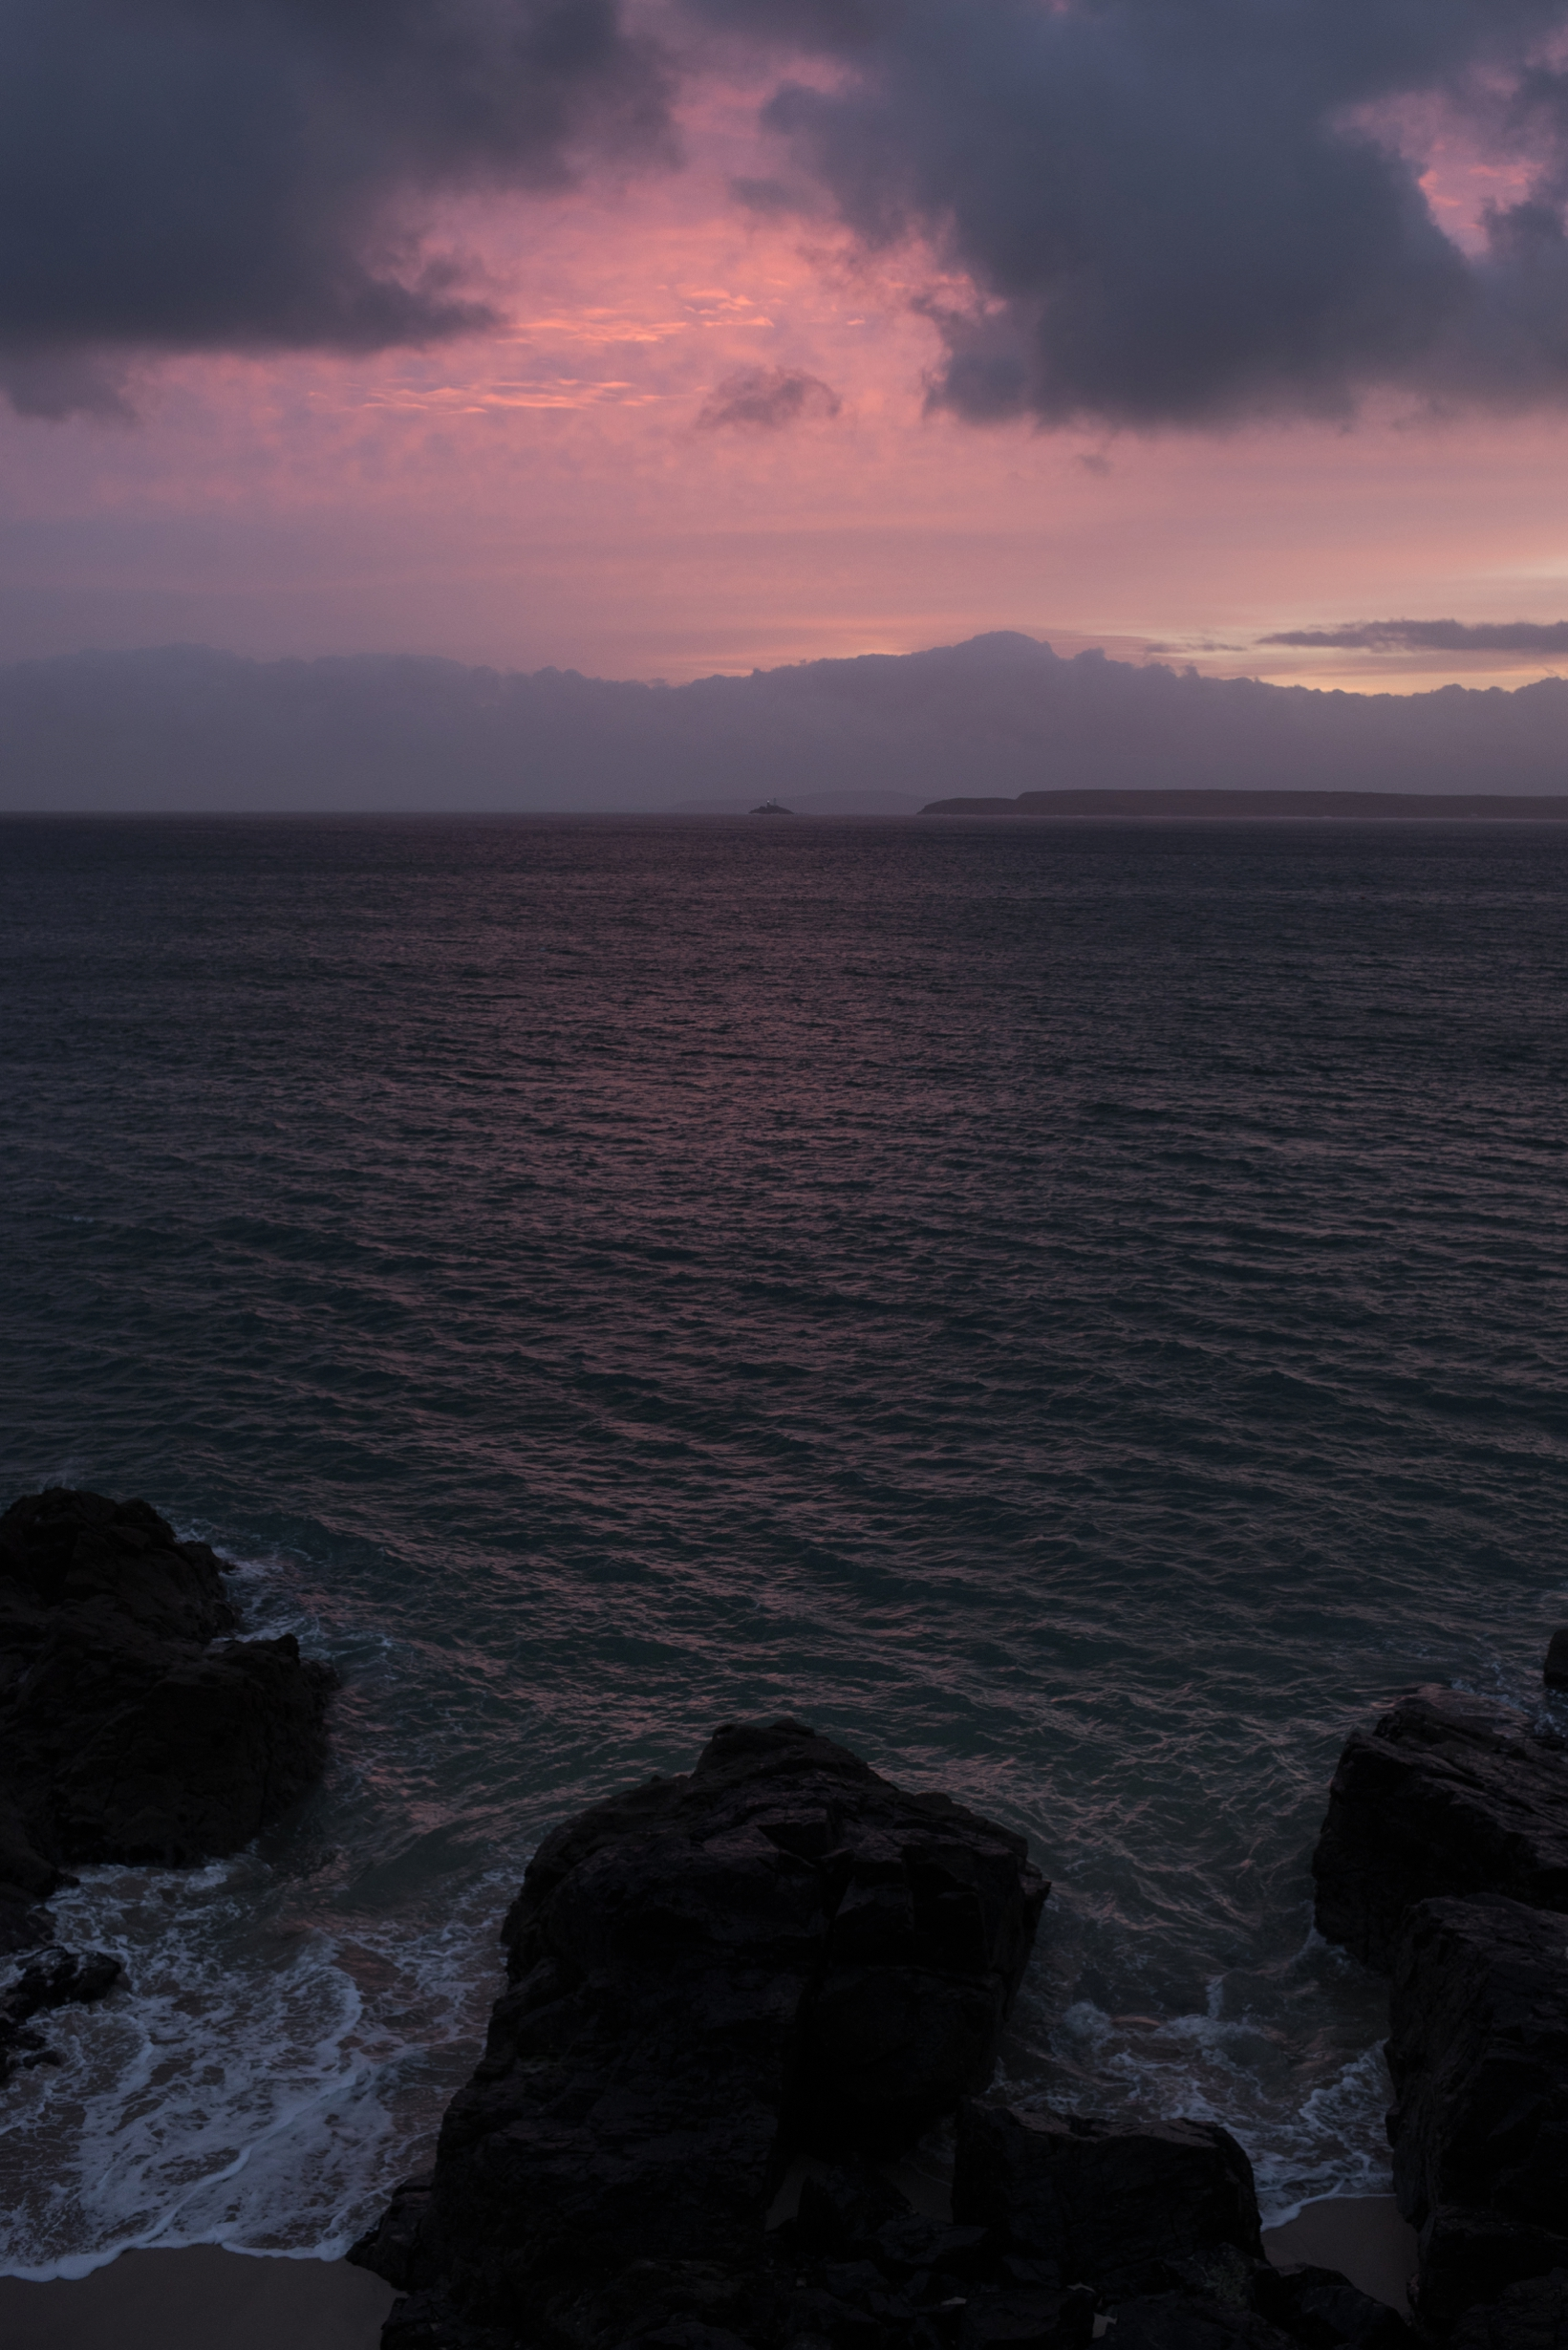 Discover - Dawn adventure to photograph sunriseCoastal walk to find views of Godrevy Lighthouse and seals resting in their covesNight Sky long exposure skills